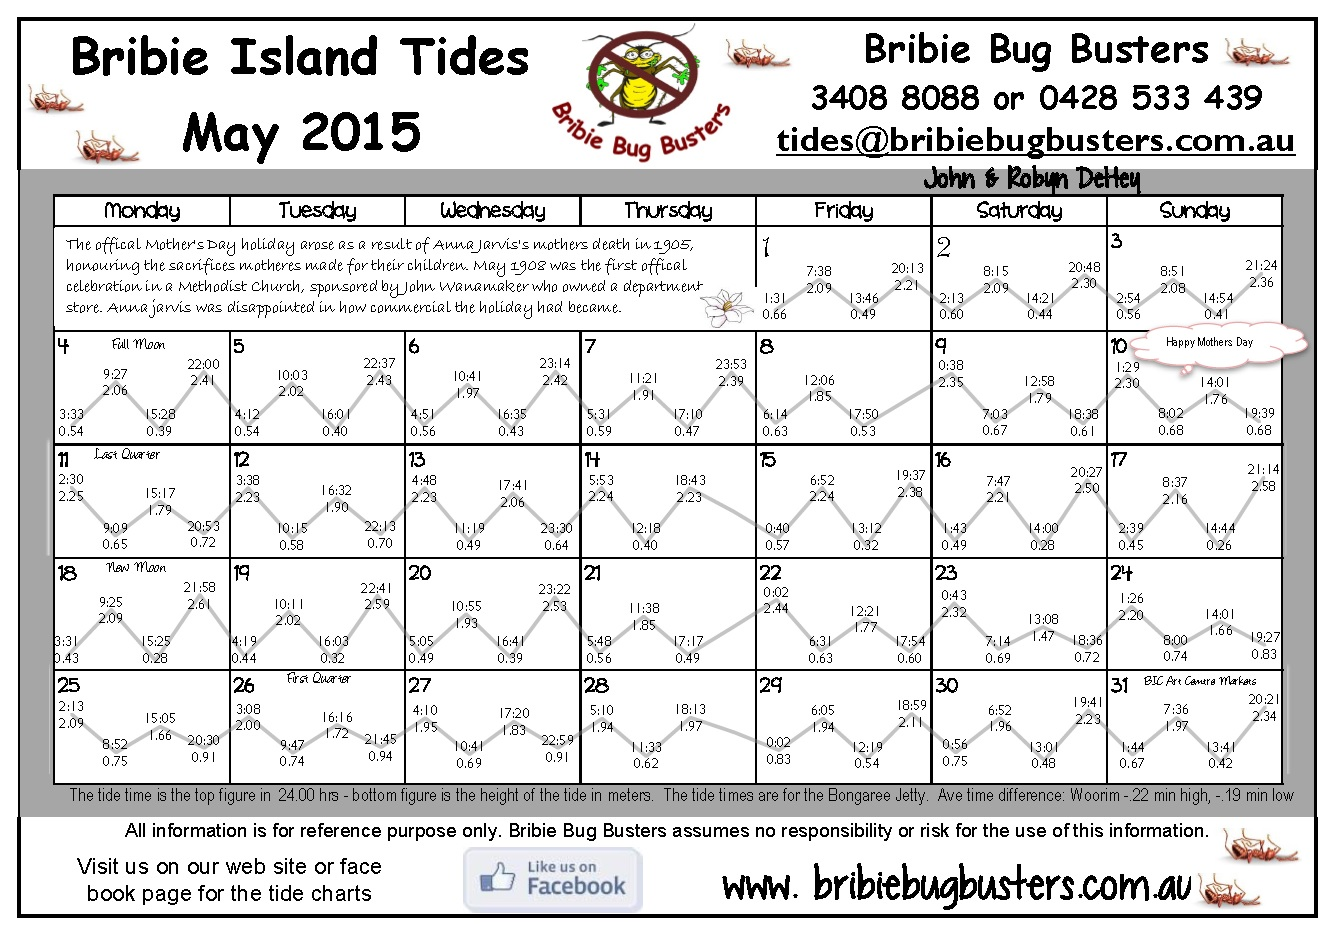 Rhode island tide chart images free any chart examples tide chart cape cod bay images free any chart examples tide chart st pete choice image nvjuhfo Images